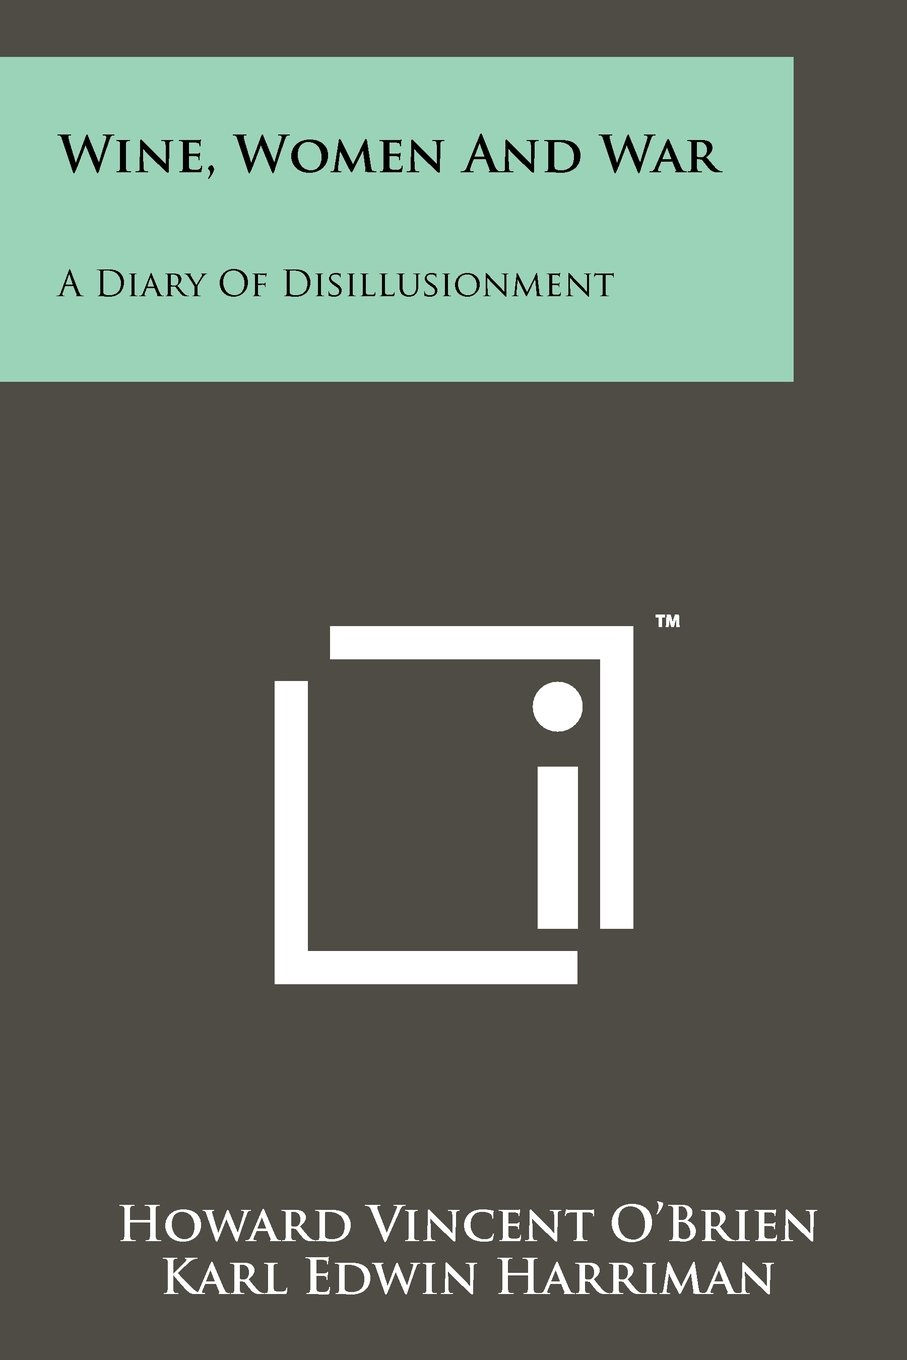 Wine, Women And War: A Diary Of Disillusionment Paperback – October 15, 2011